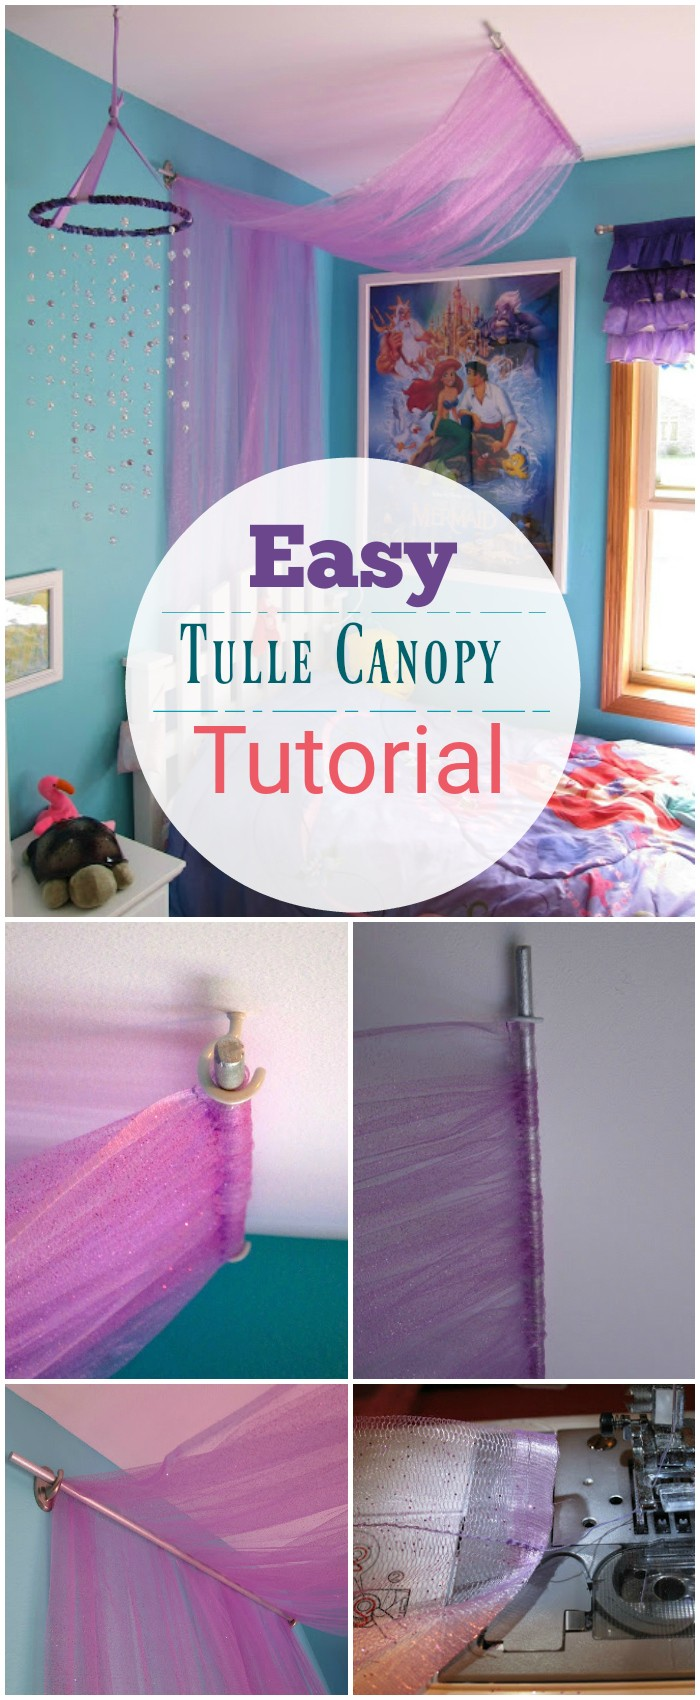 Easy Tulle Canopy Tutorial DIY Bed Canopy Ideas Without Spending A Lot